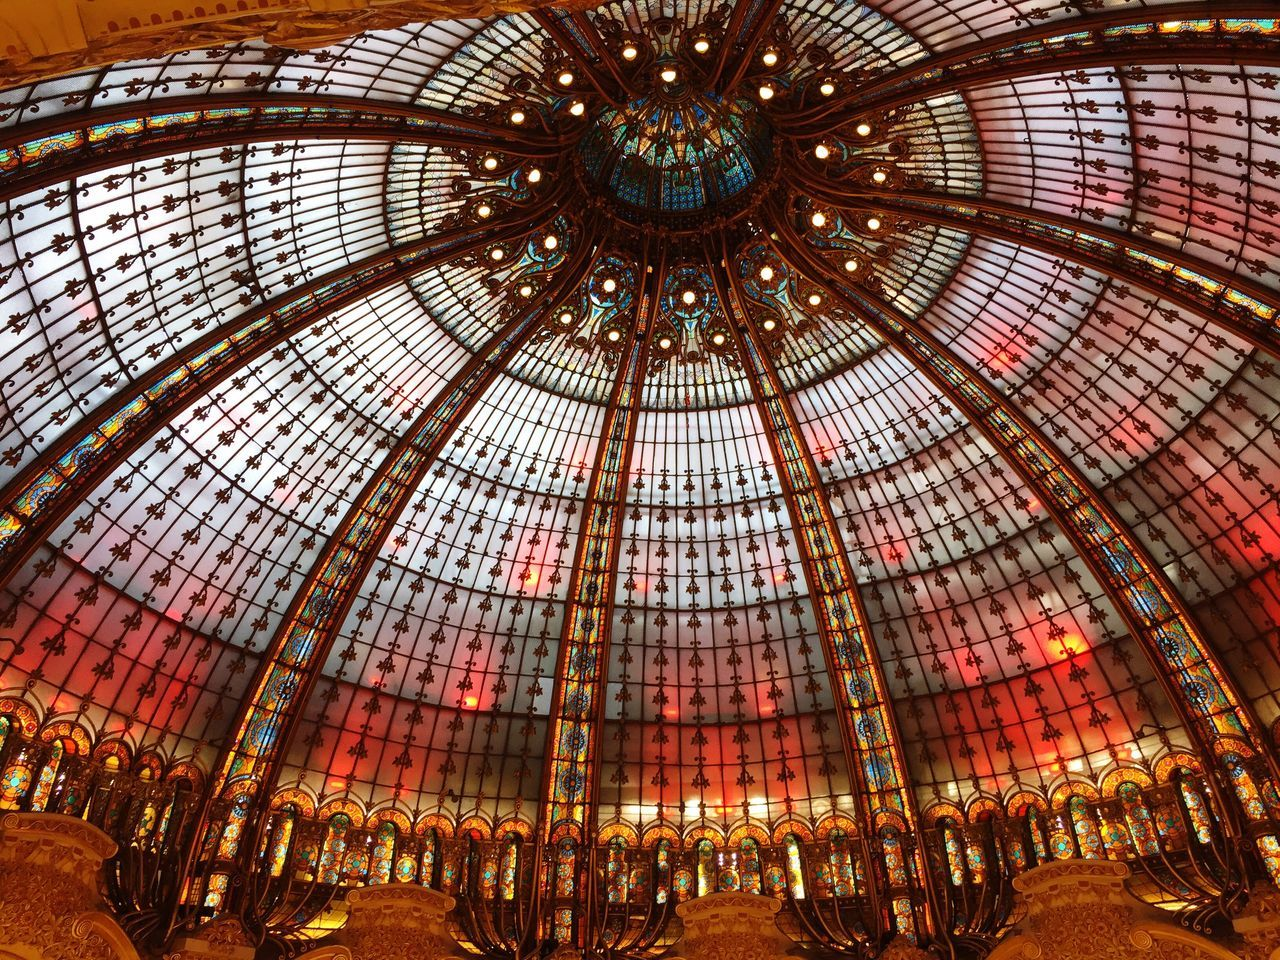 Ceiling Low Angle View Indoors  Architecture No People Shopping Mall Illuminated Architectural Design Day Galeries Lafayette